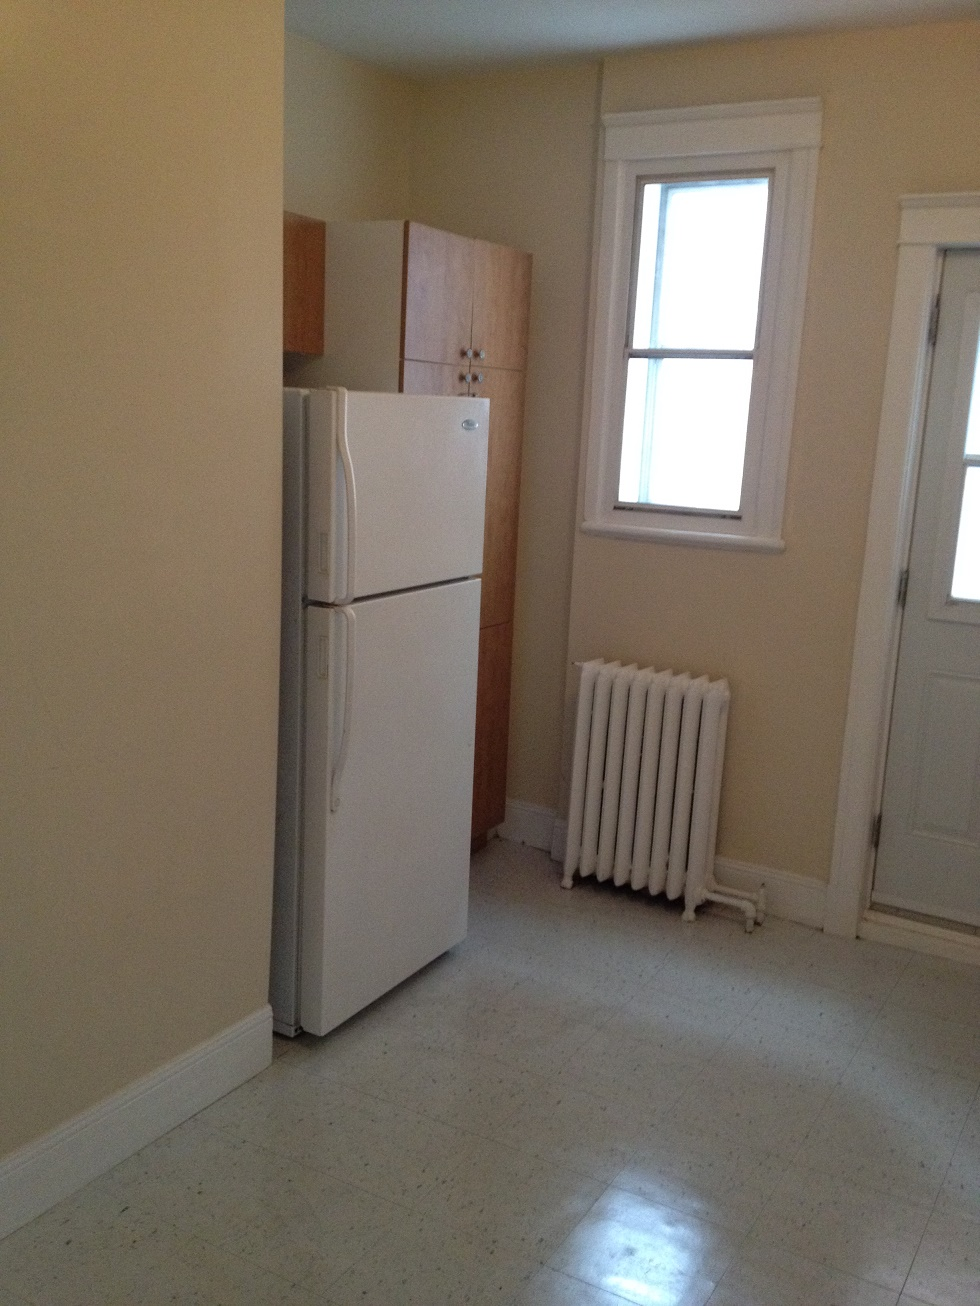 2 bedroom Apartments for rent in Cote-St-Luc at 5430 Cote Saint Luc - Photo 05 - RentQuebecApartments – L112094